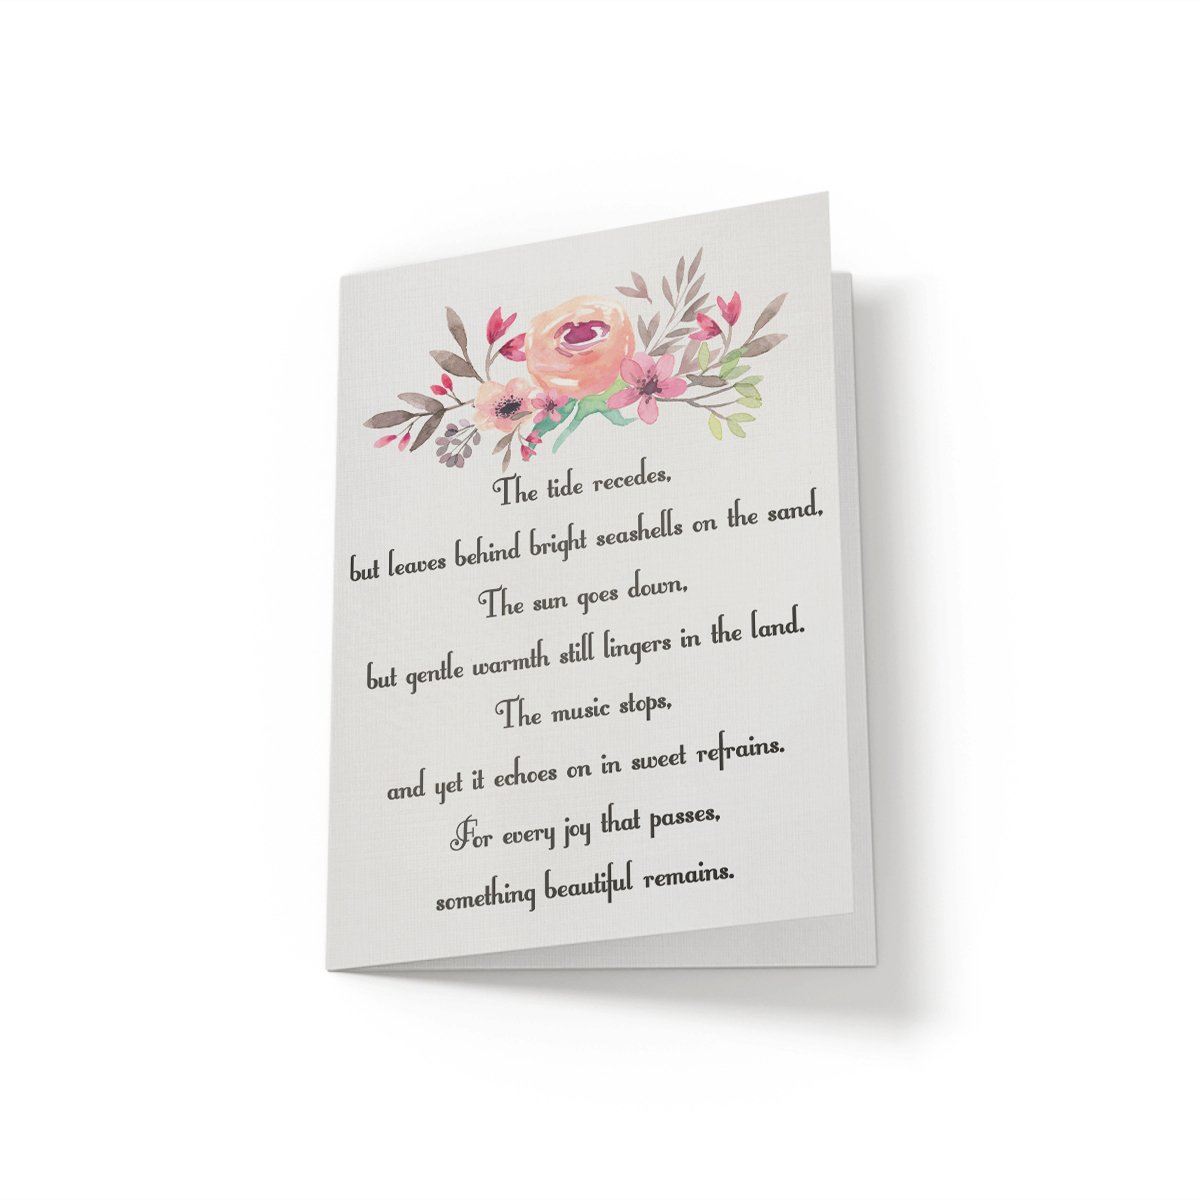 The tide recedes - Greeting Card - Netties Expressions